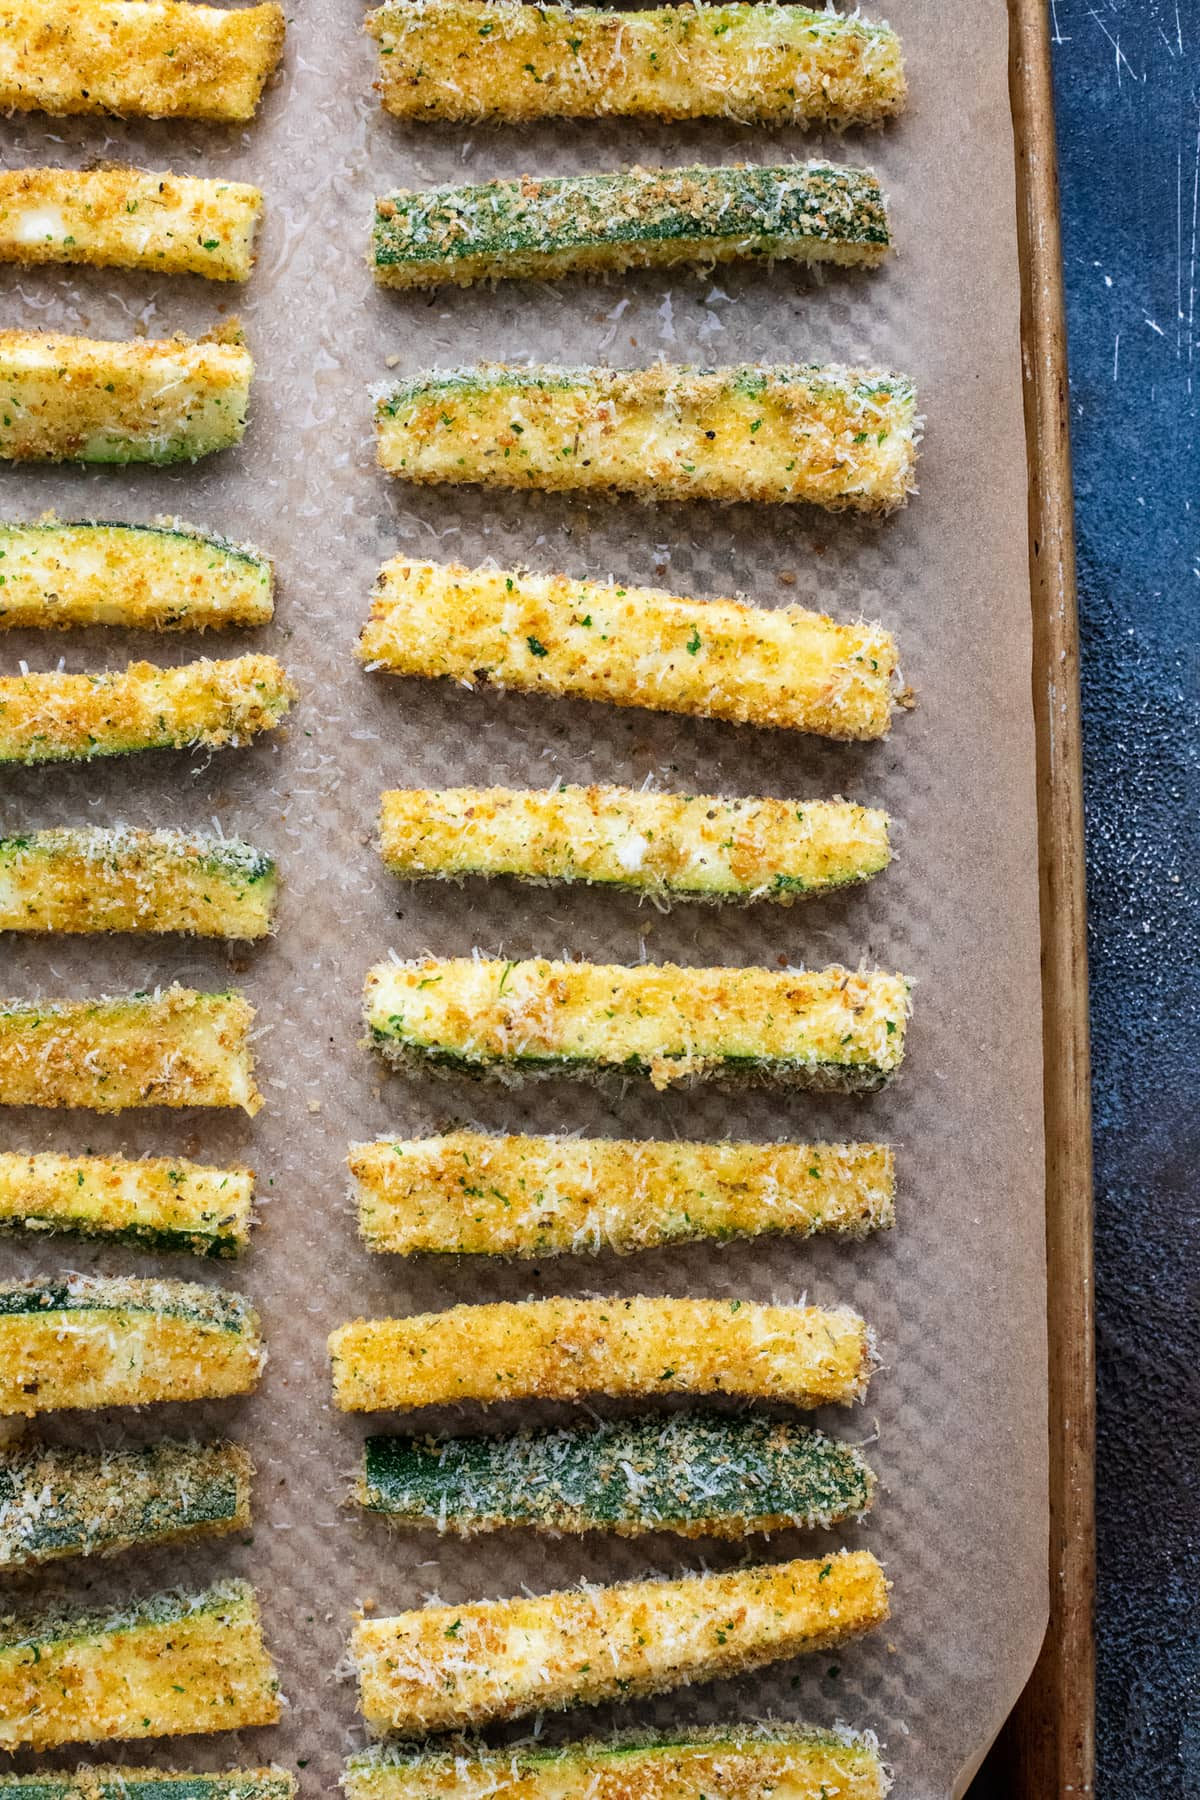 zucchini fries arranged on baking sheet lined with parchment paper.